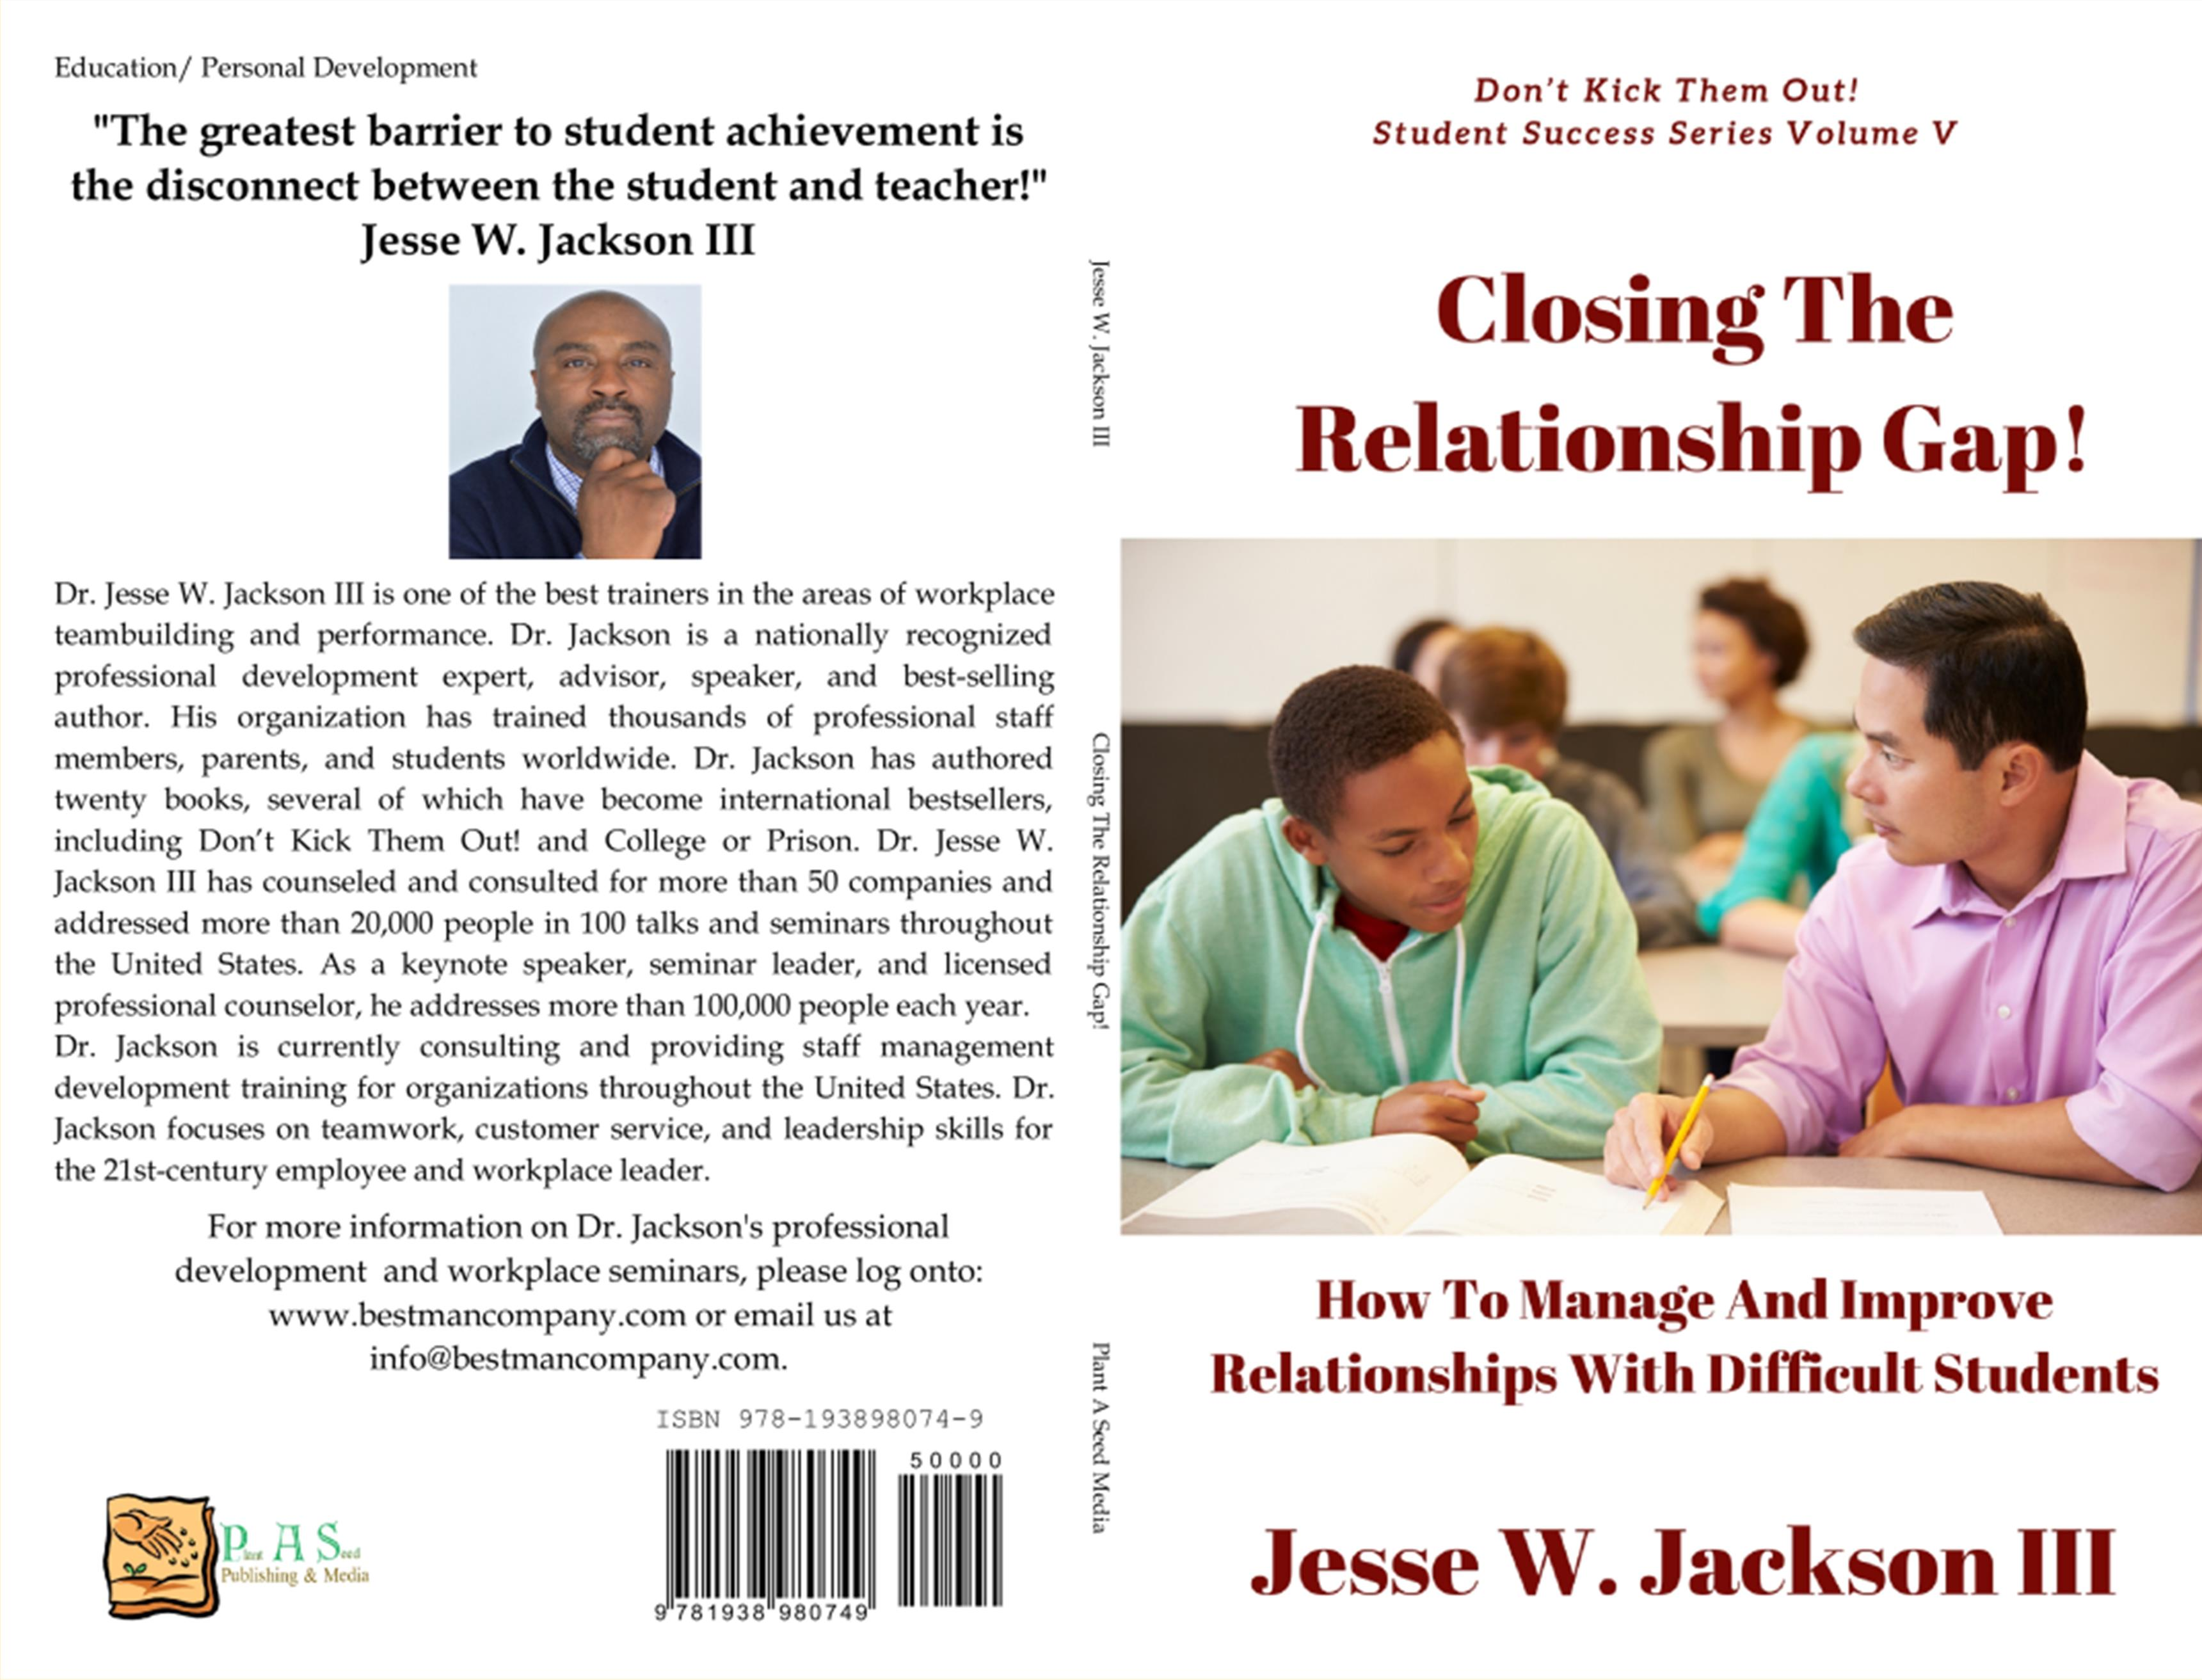 Closing The Relationship Gap! How To Manage And Improve Relationships With Difficult Students cover image